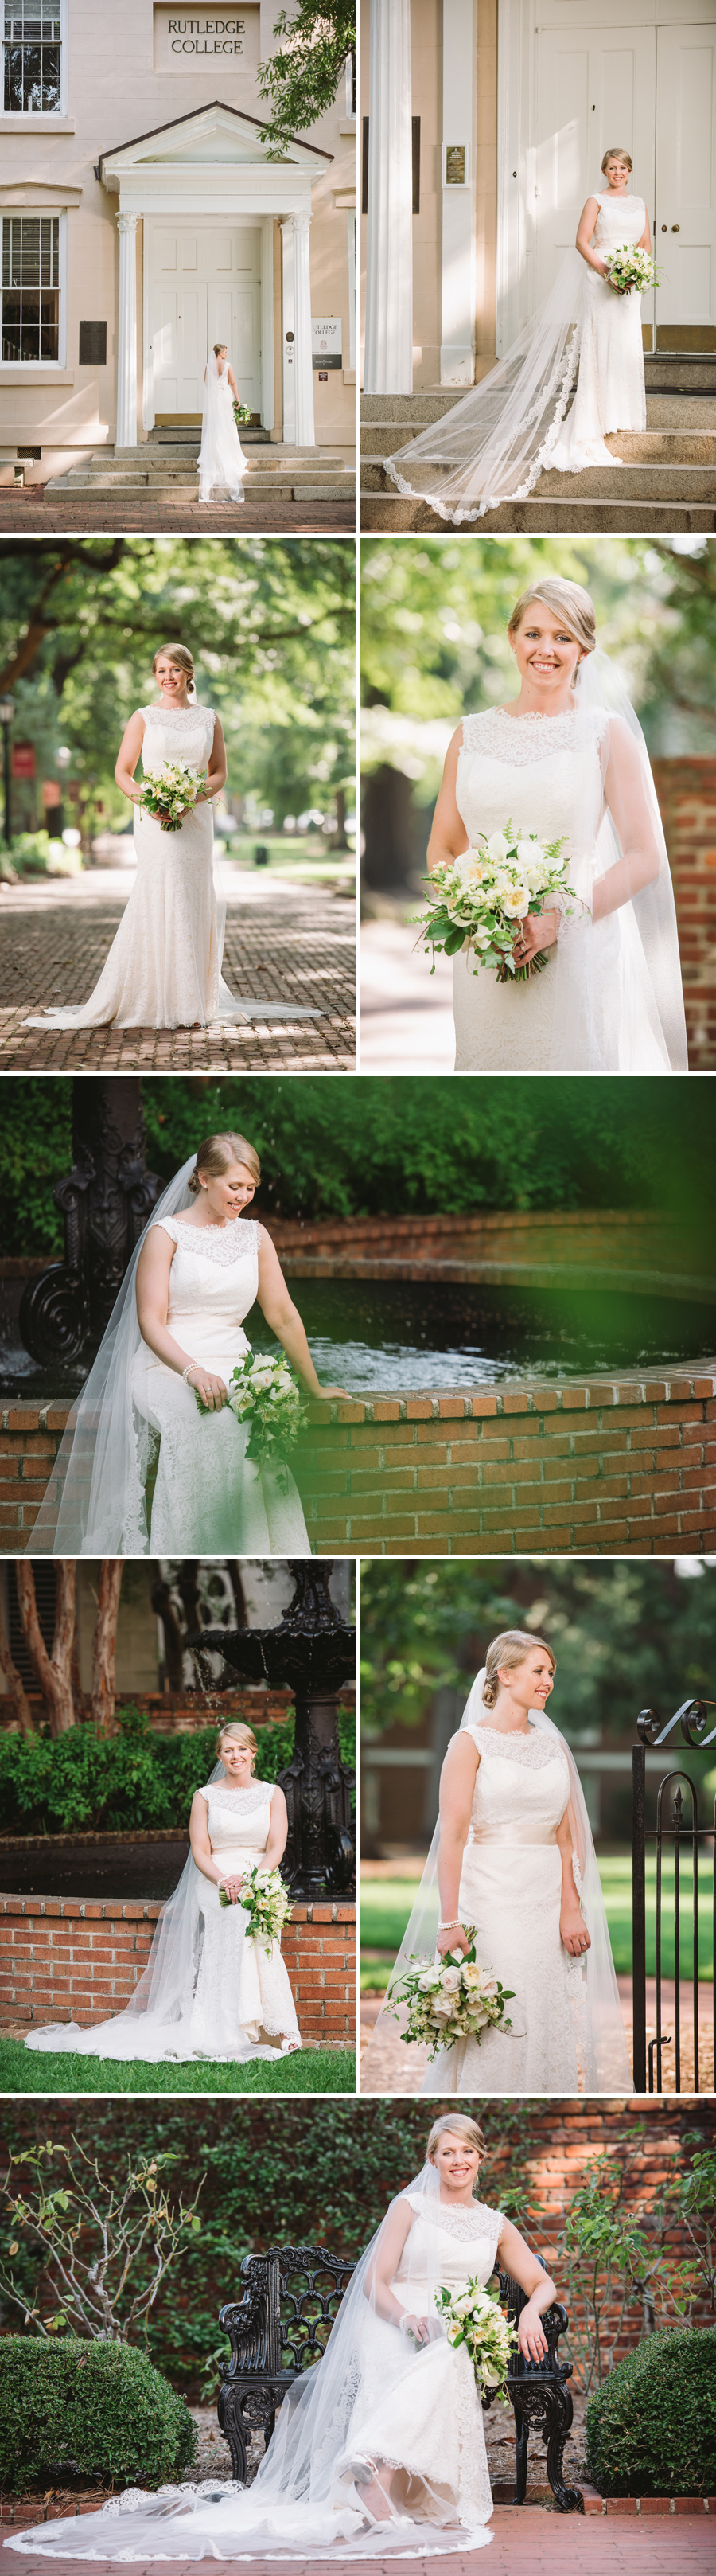 meagan-horseshoe-usc-bridals